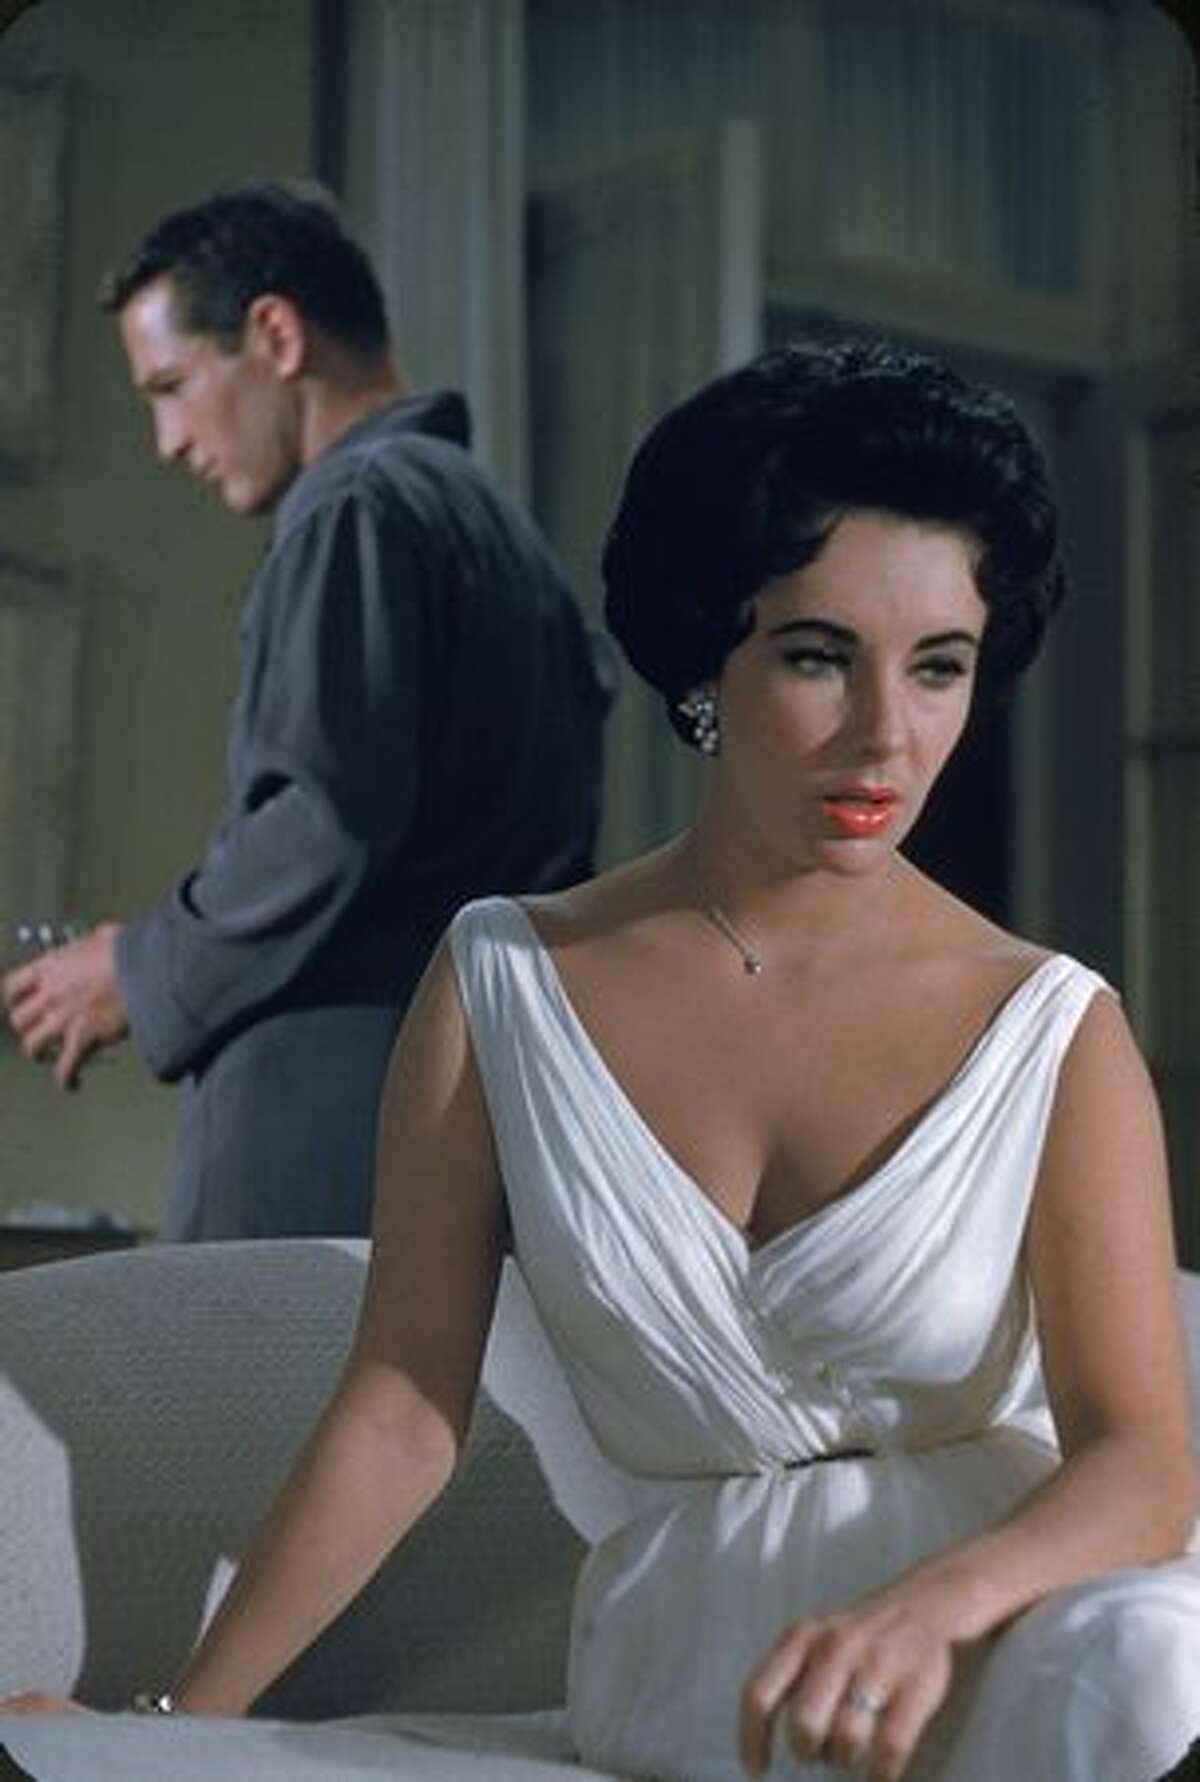 American actor Paul Newman and British-born actor Elizabeth Taylor have a conversation in a still from the film, 'Cat On A Hot Tin Roof', directed by Richard Brooks, 1958.